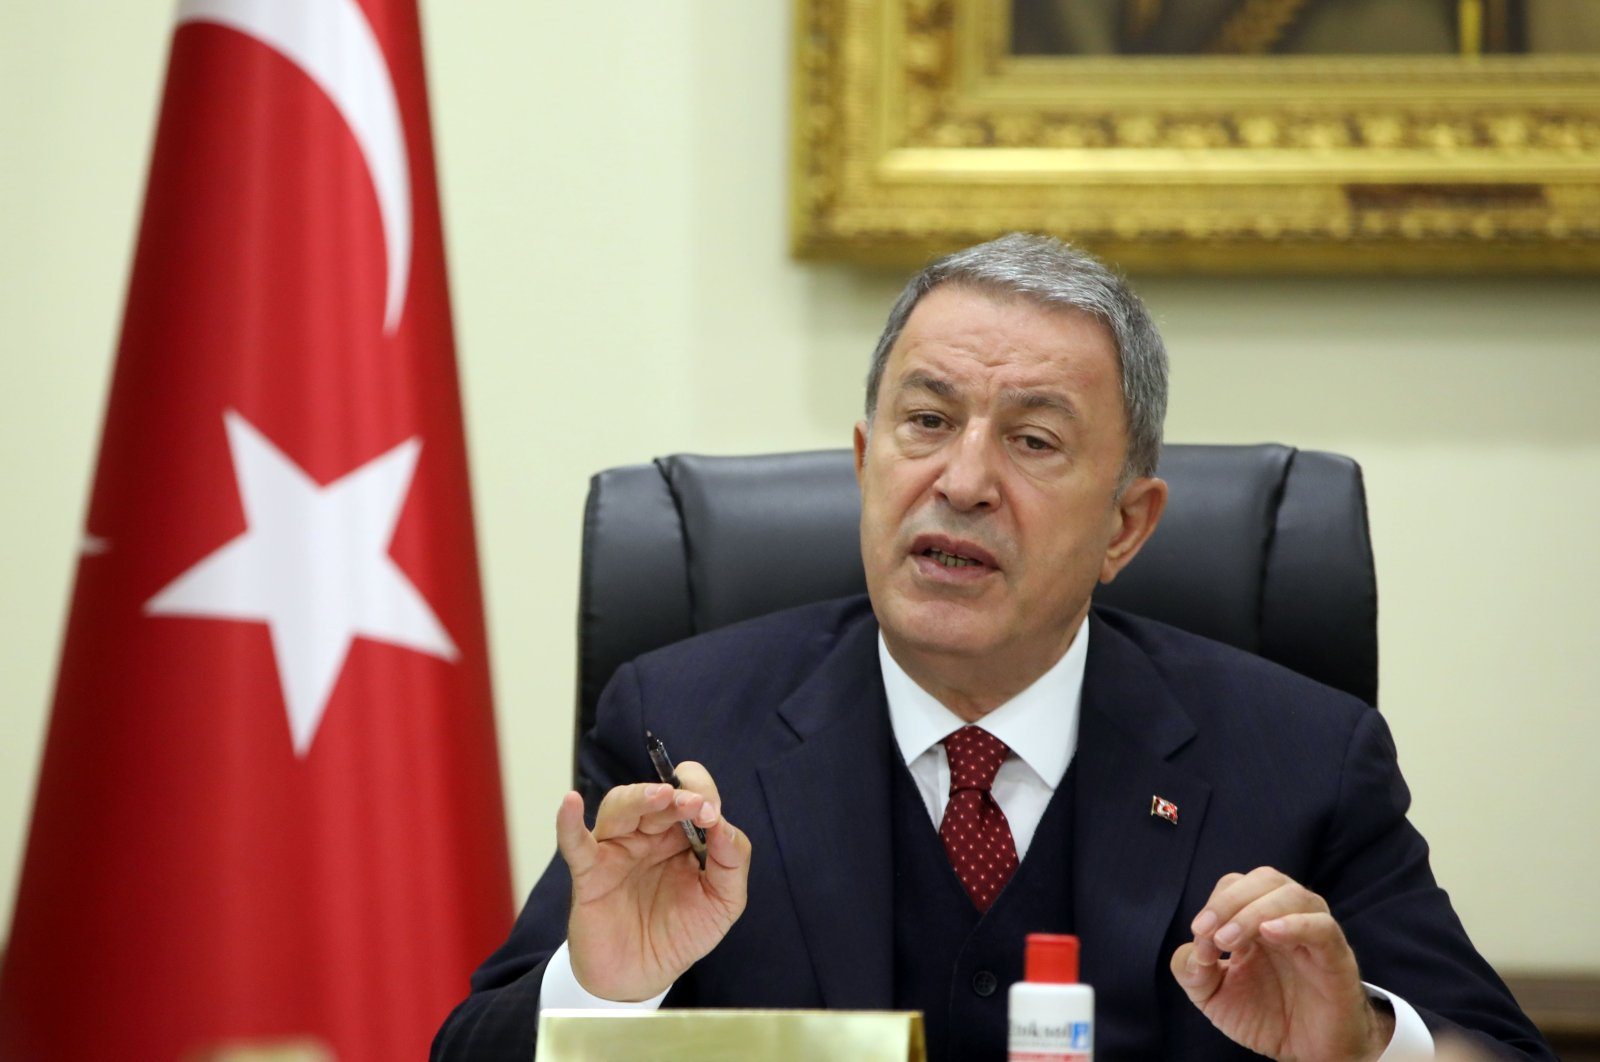 Defense Minister Hulusi Akar attends a videoconference meeting with Turkish military officials in Ankara, Turkey, May 29, 2020. (AA File Photo)